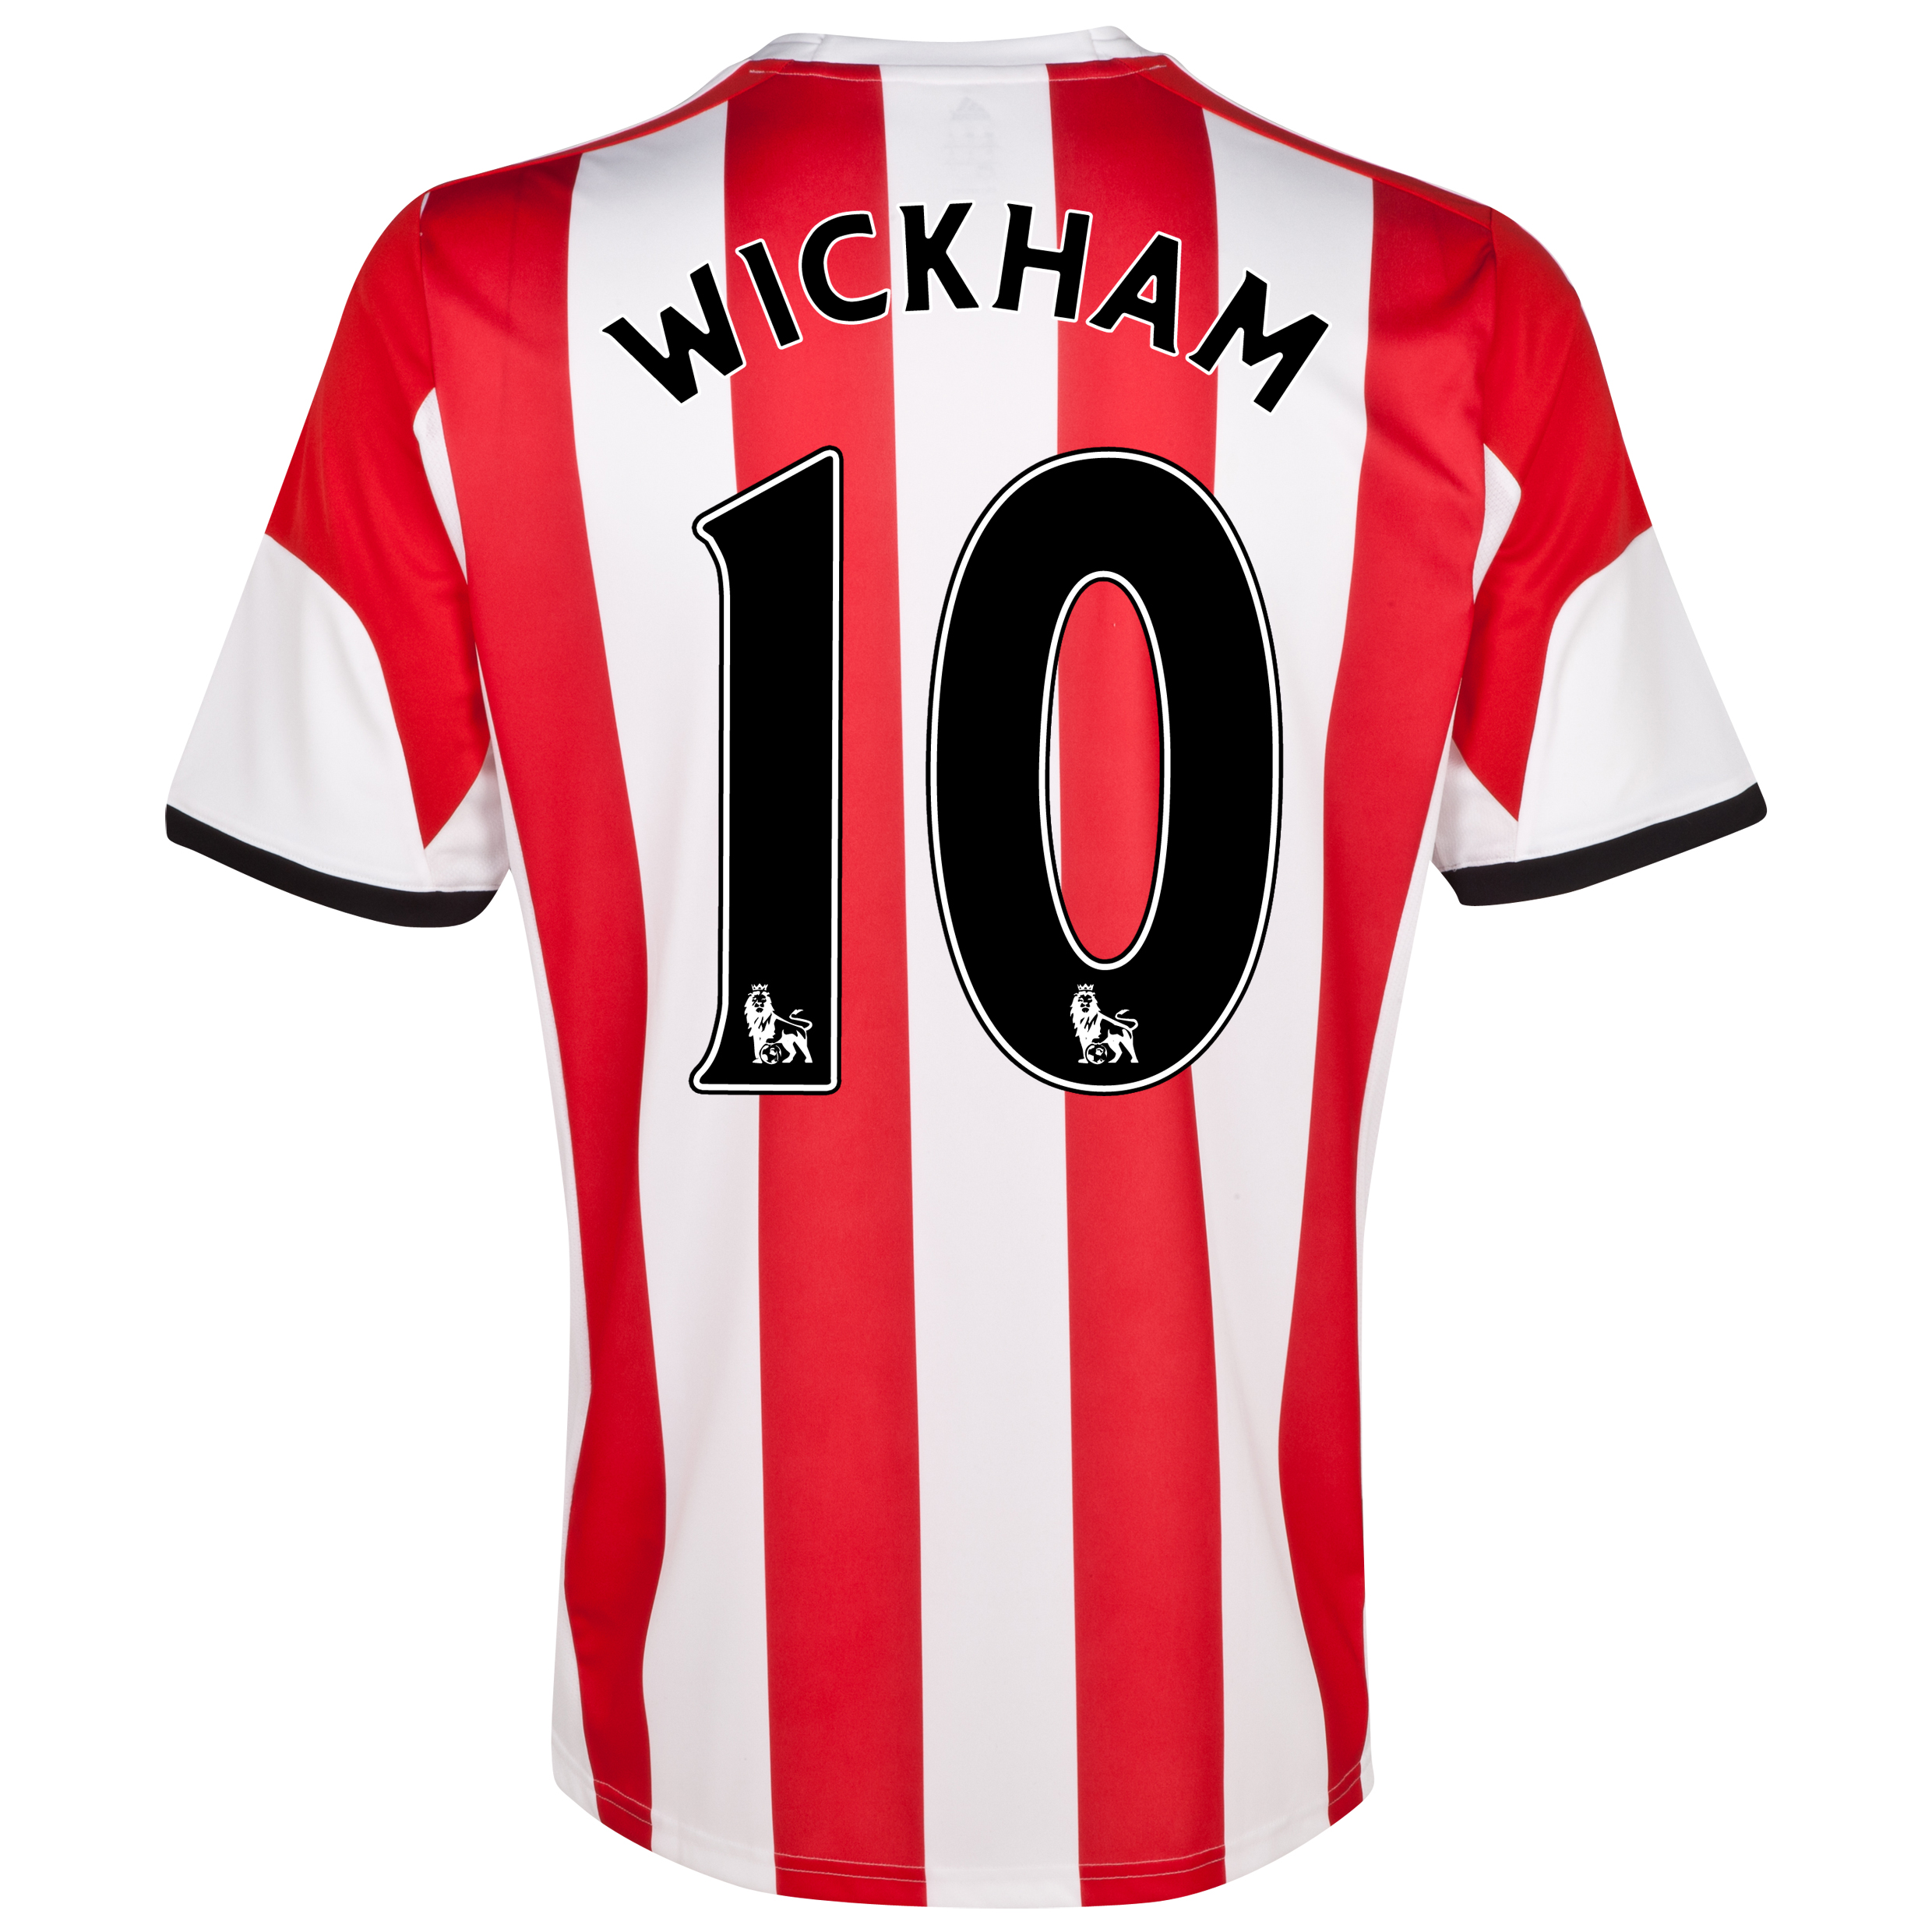 Sunderland Home Shirt 2013/14 - Junior with Wickham 10 printing